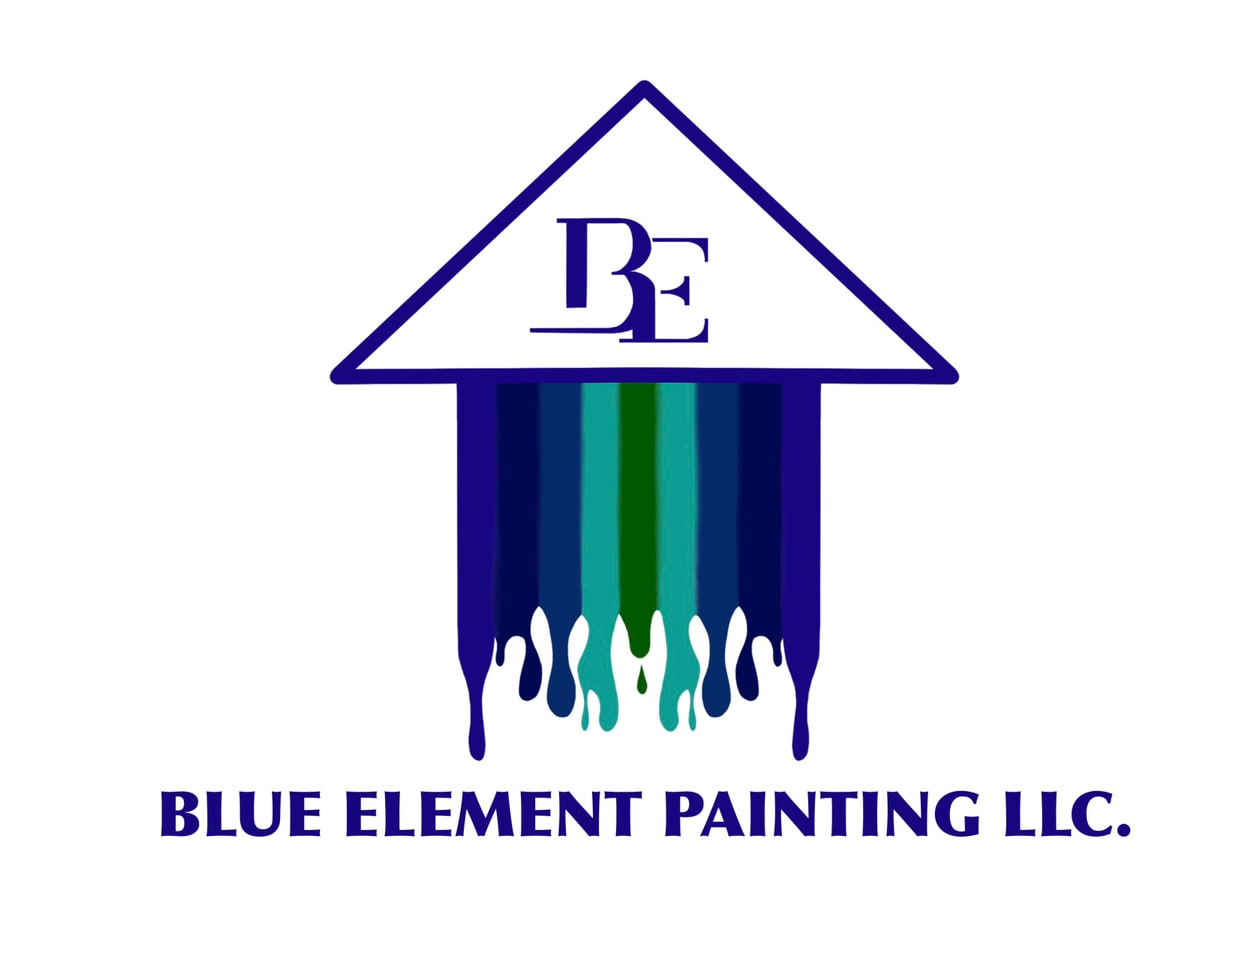 Blue Element Painting